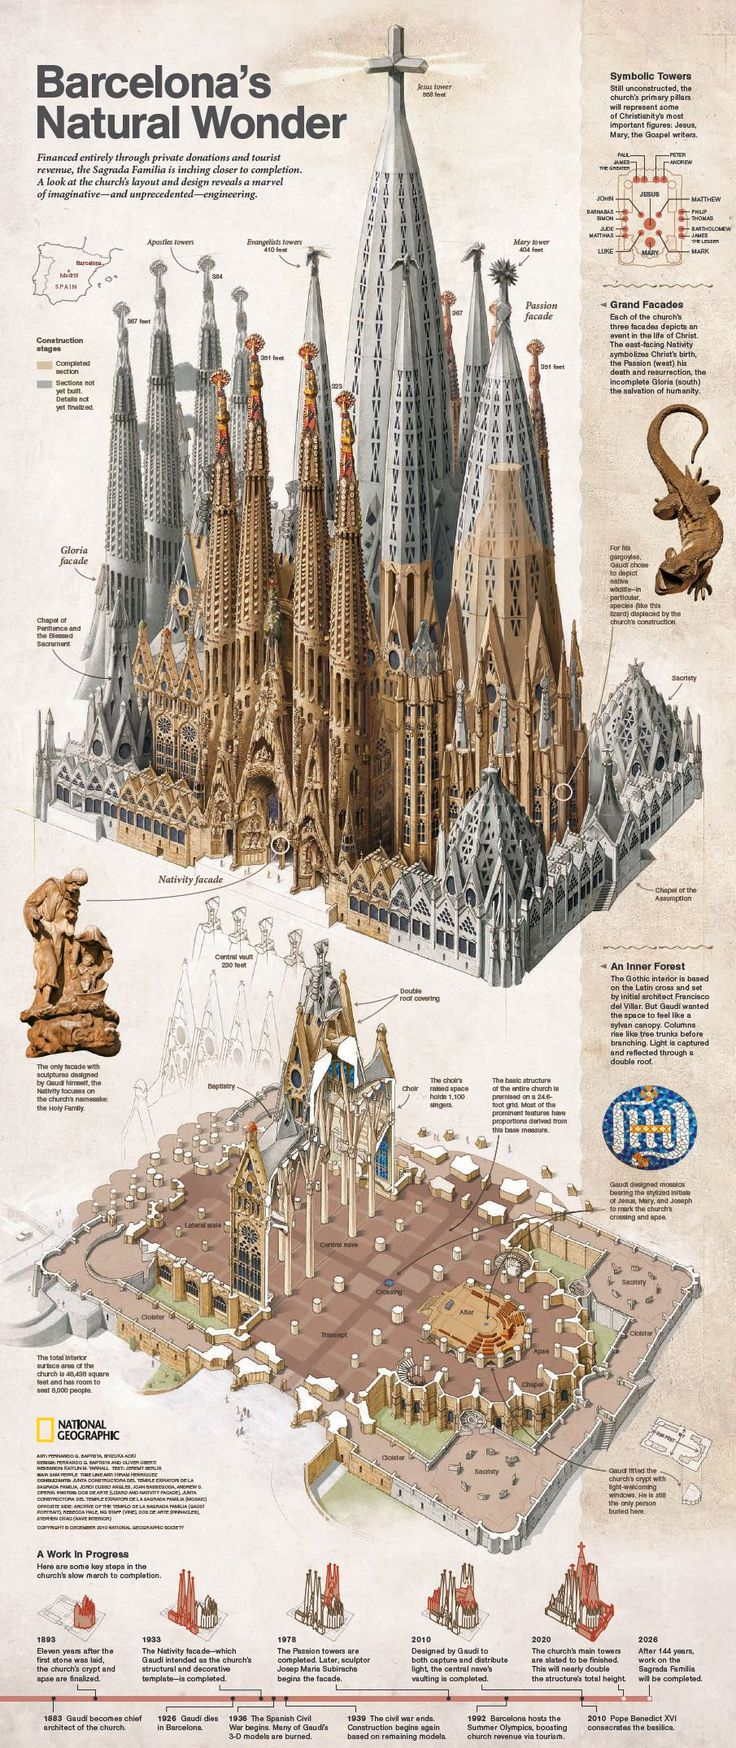 Sagrada Familia - maybe finished in 2024. It will be the biggest church in the world by then